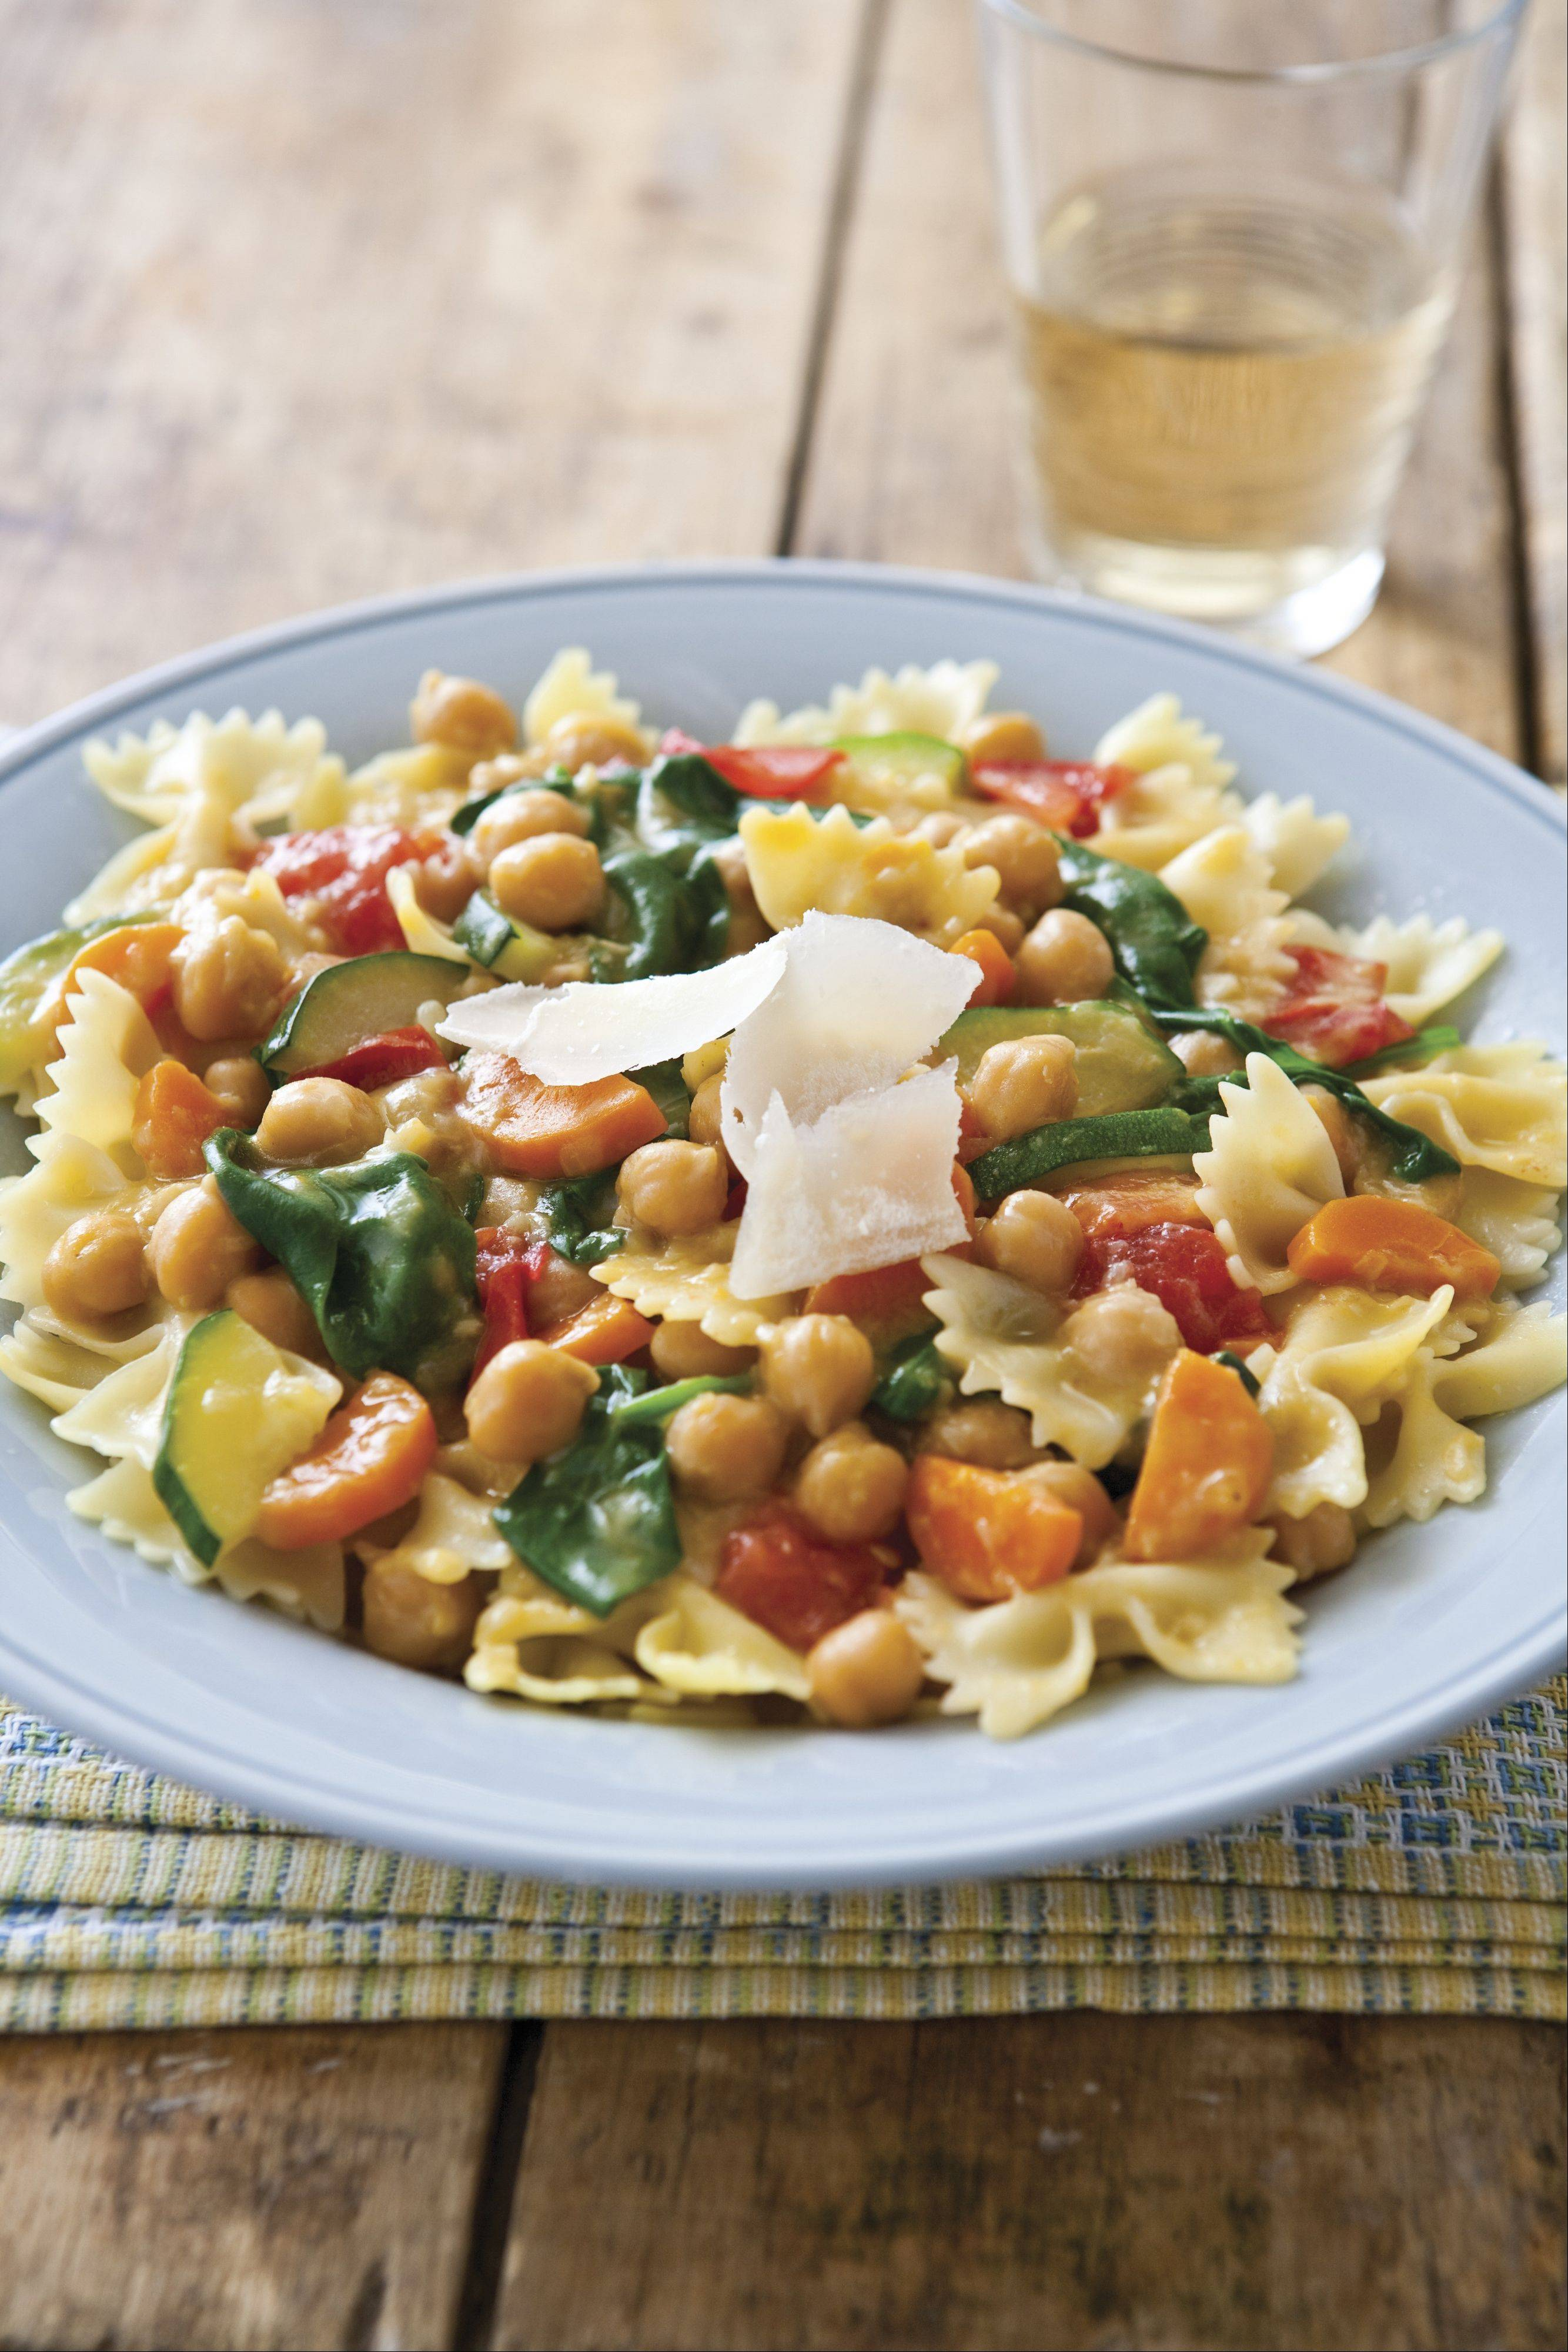 Chickpeas, carrots and other garden vegetables make a healthy, slow-cooked sauce for pasta.